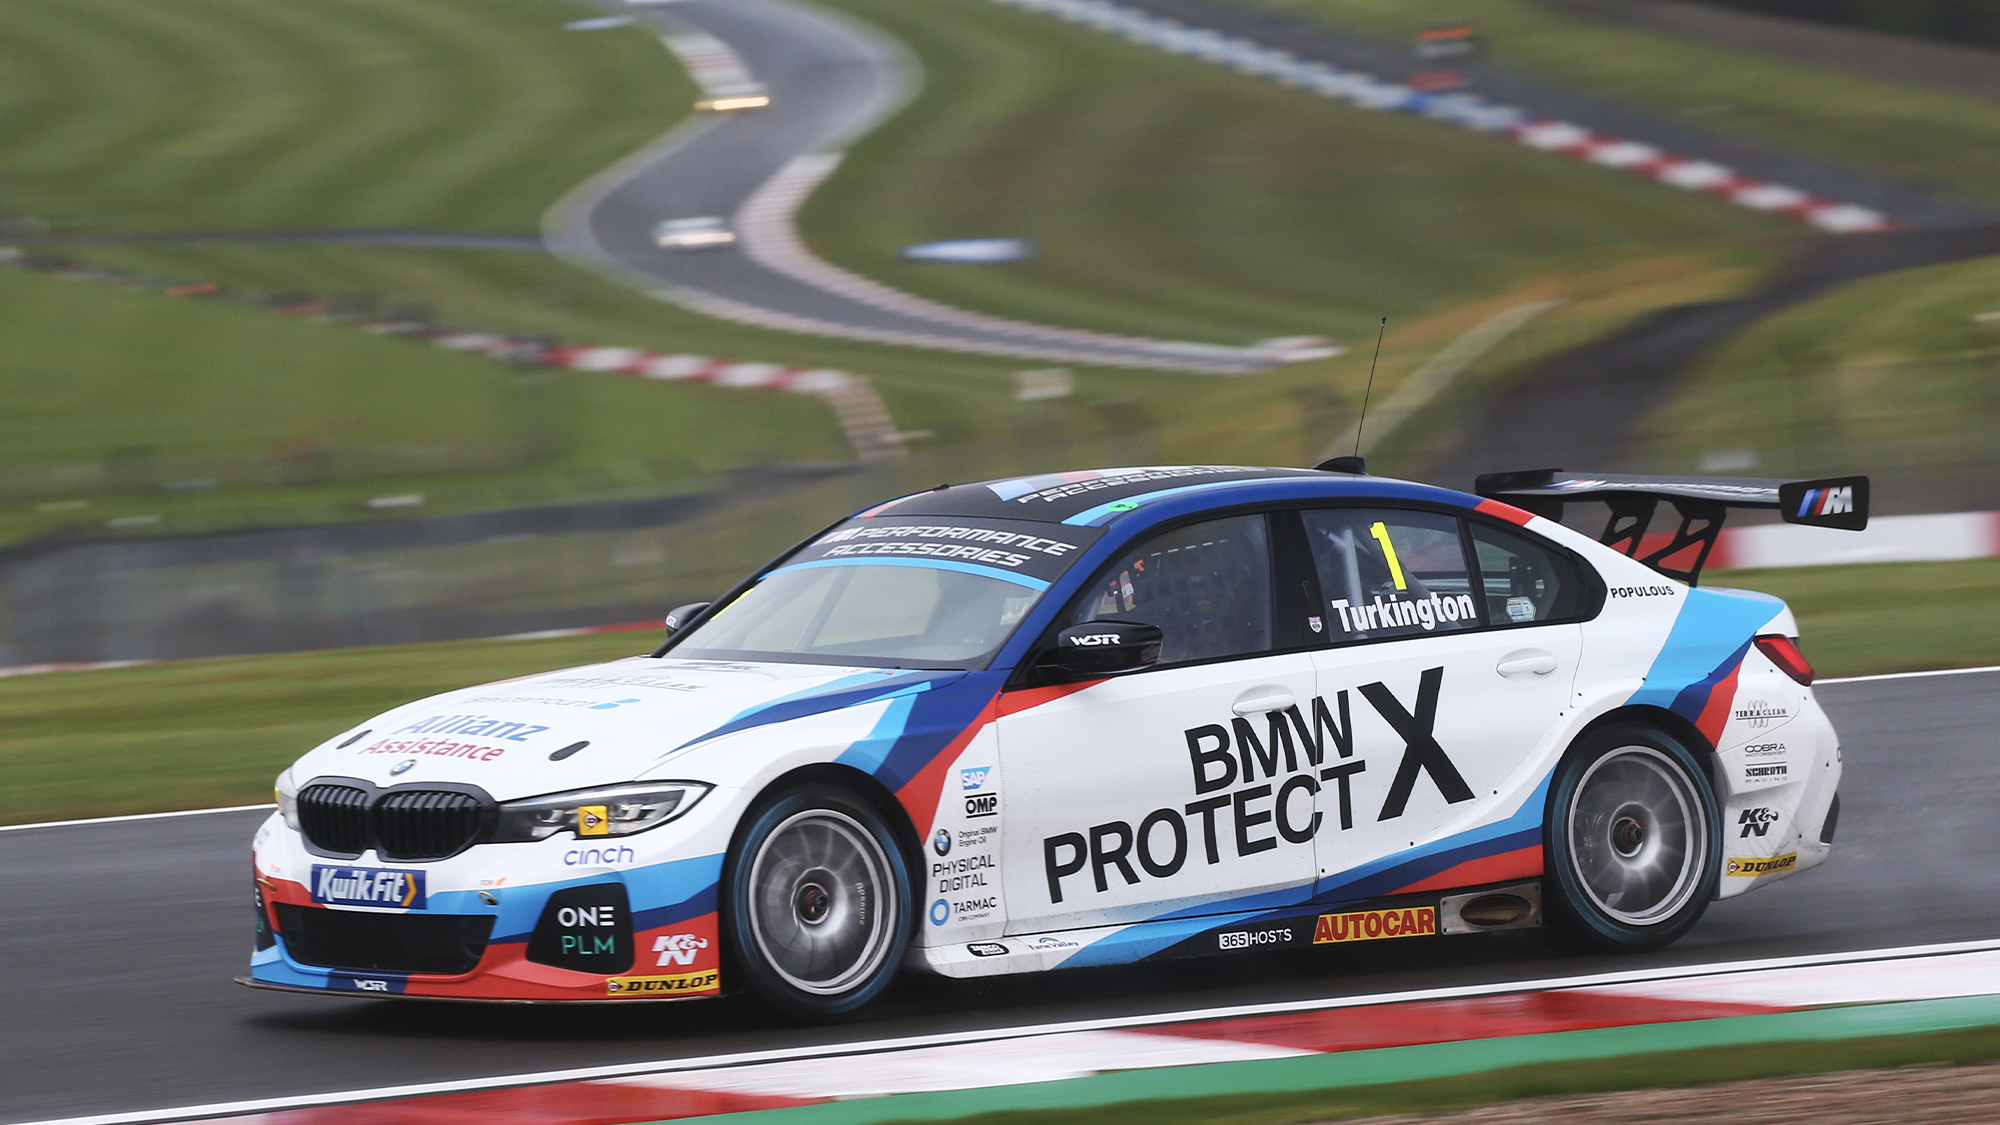 Spectators banned from BTCC races, days before opening round